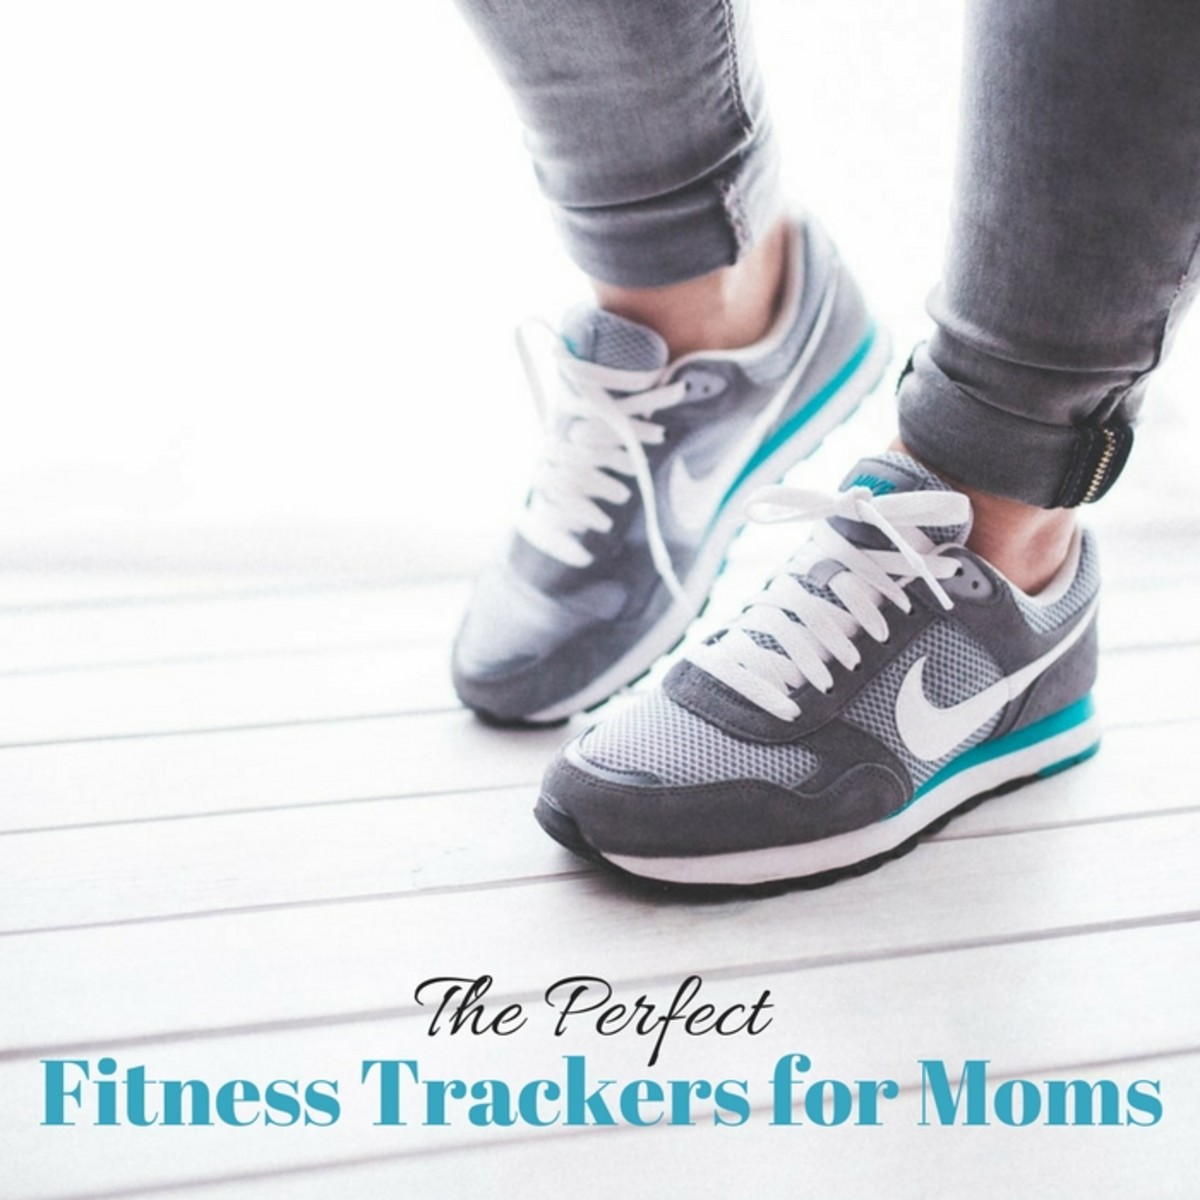 Best Fitness Trackers for Moms